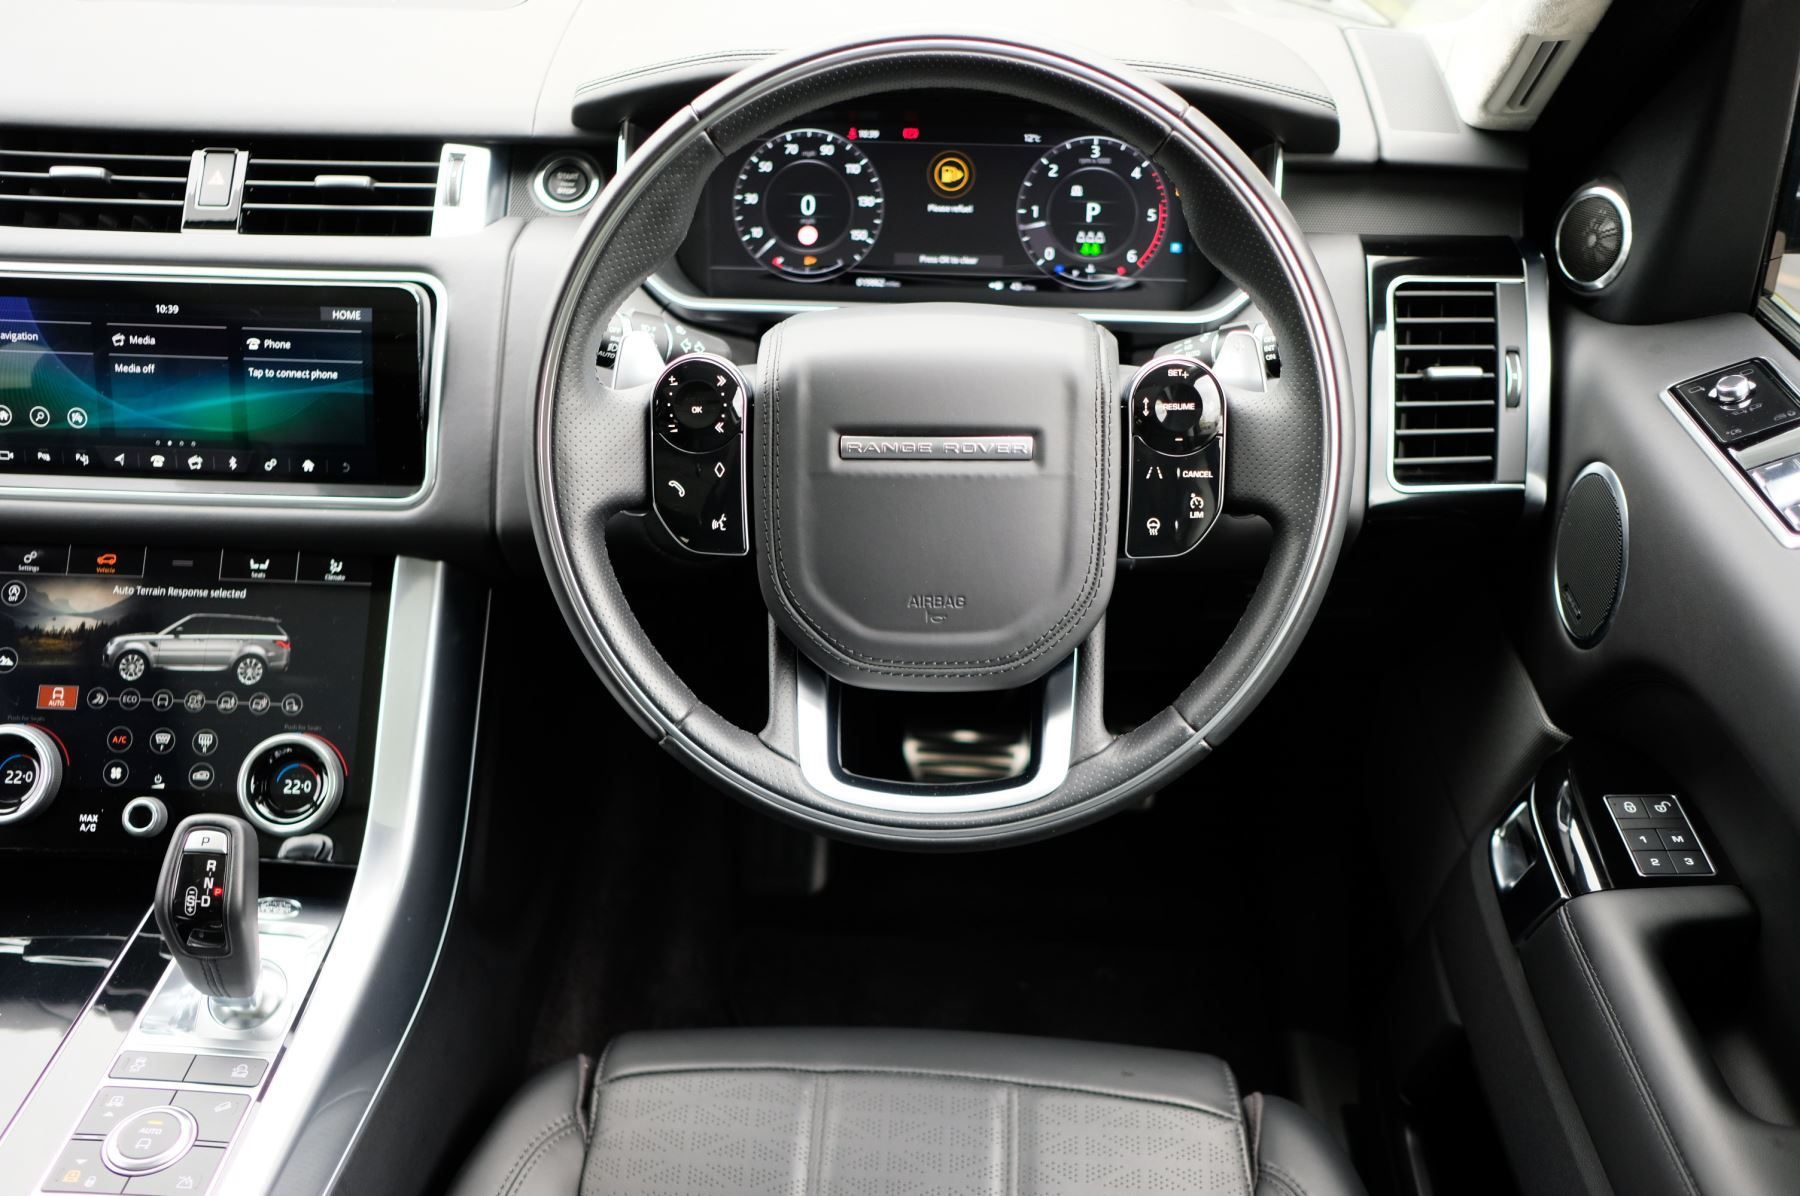 Land Rover Range Rover Sport 3.0 SDV6 Autobiography Dynamic 5dr [7 Seat] - Rear Seat Entertainment - 21 Inch Alloys image 21